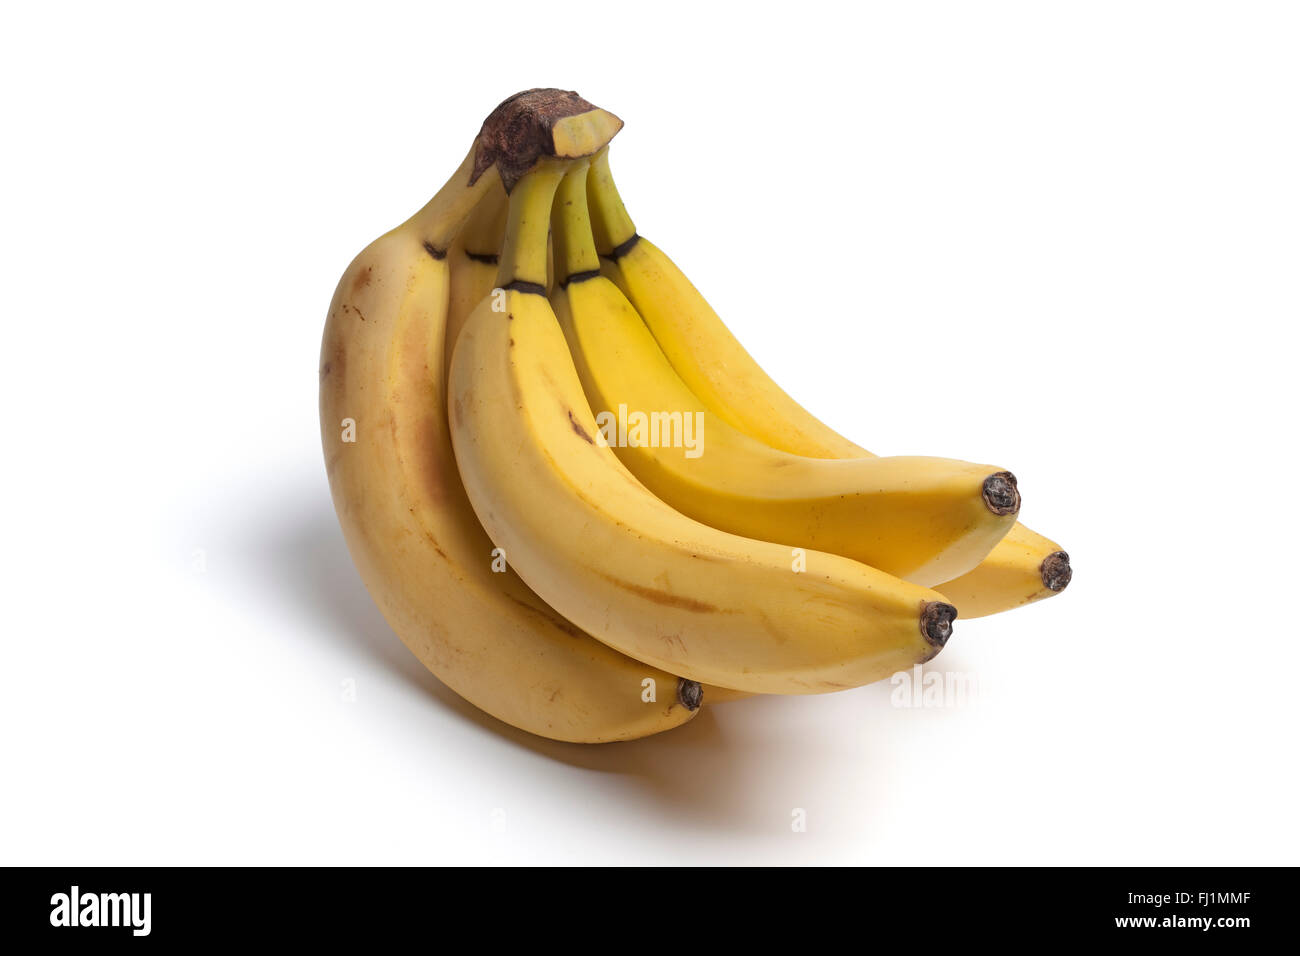 Bunch of unpeeled bananas on white background - Stock Image